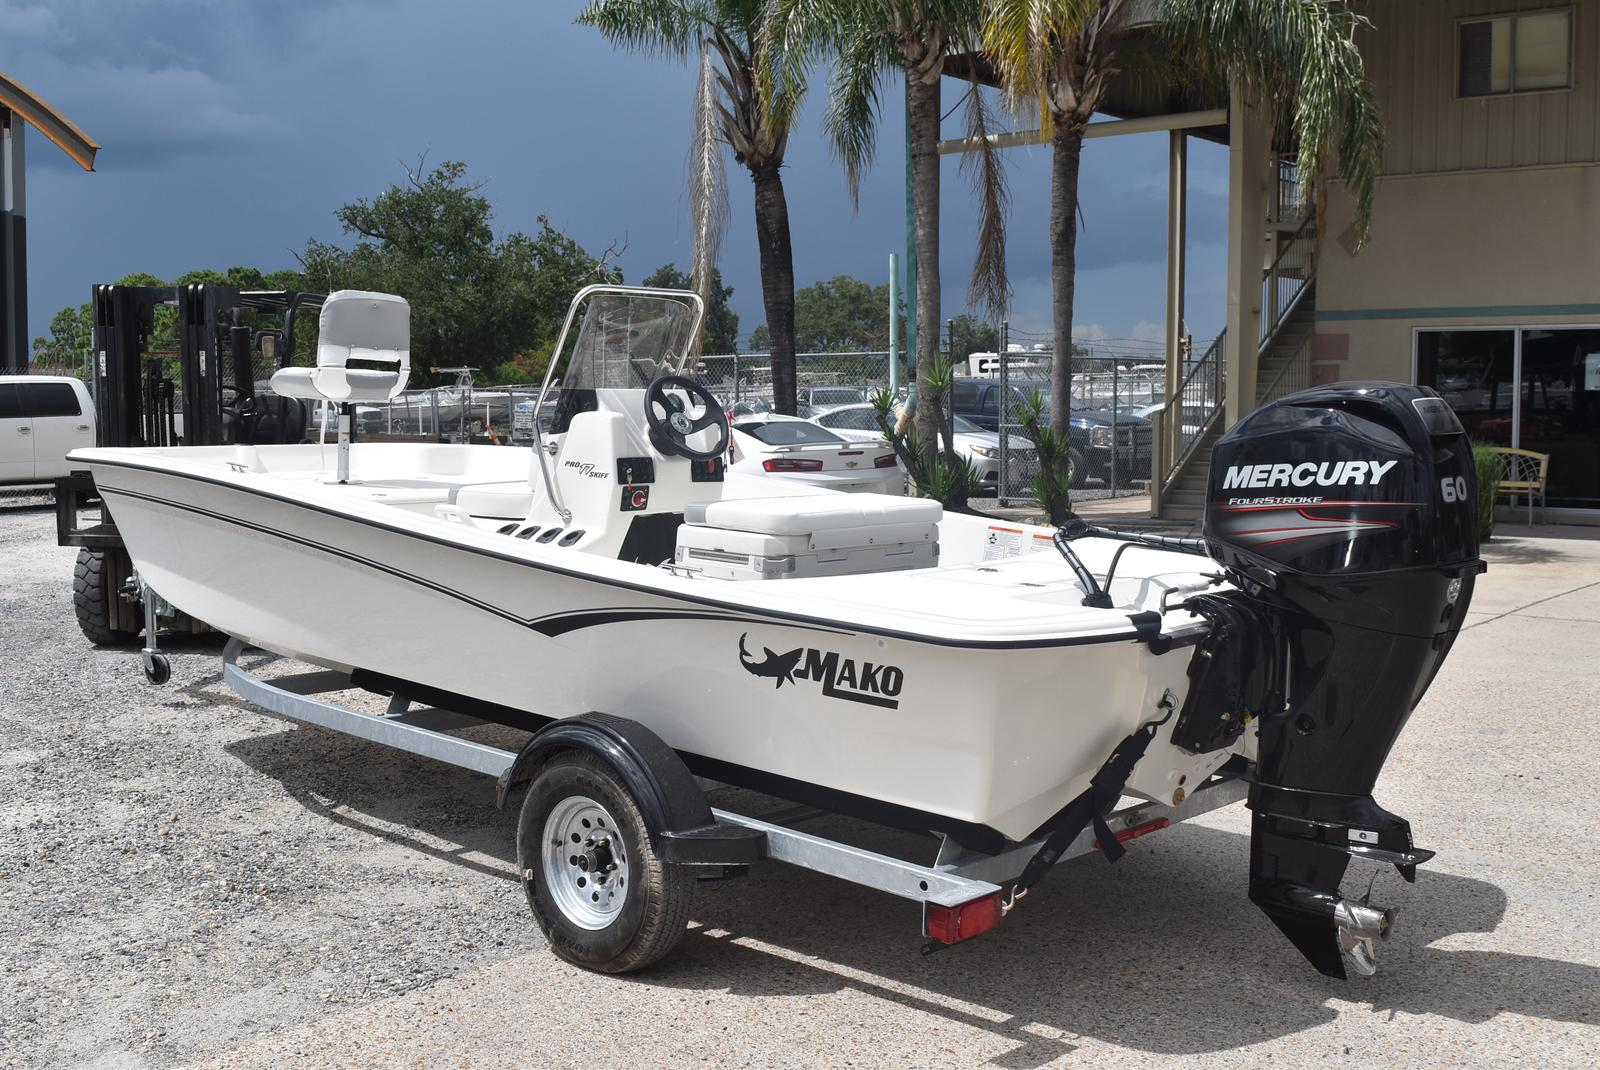 2020 Mako boat for sale, model of the boat is Pro Skiff 17, 75 ELPT & Image # 167 of 702